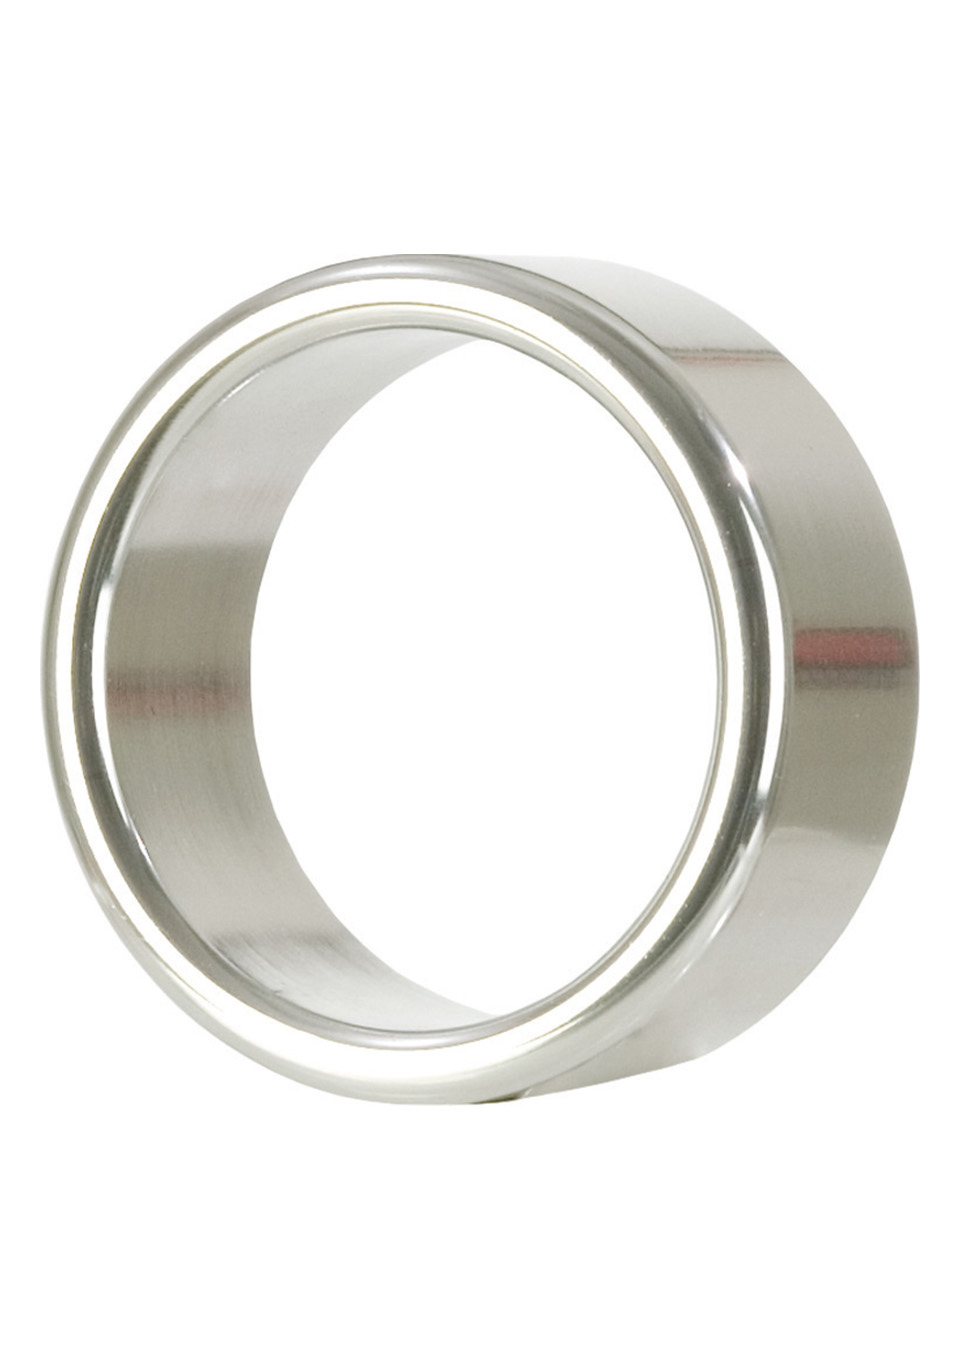 Stainless Steel Cock Ring-26mm by Wicked Rabbit